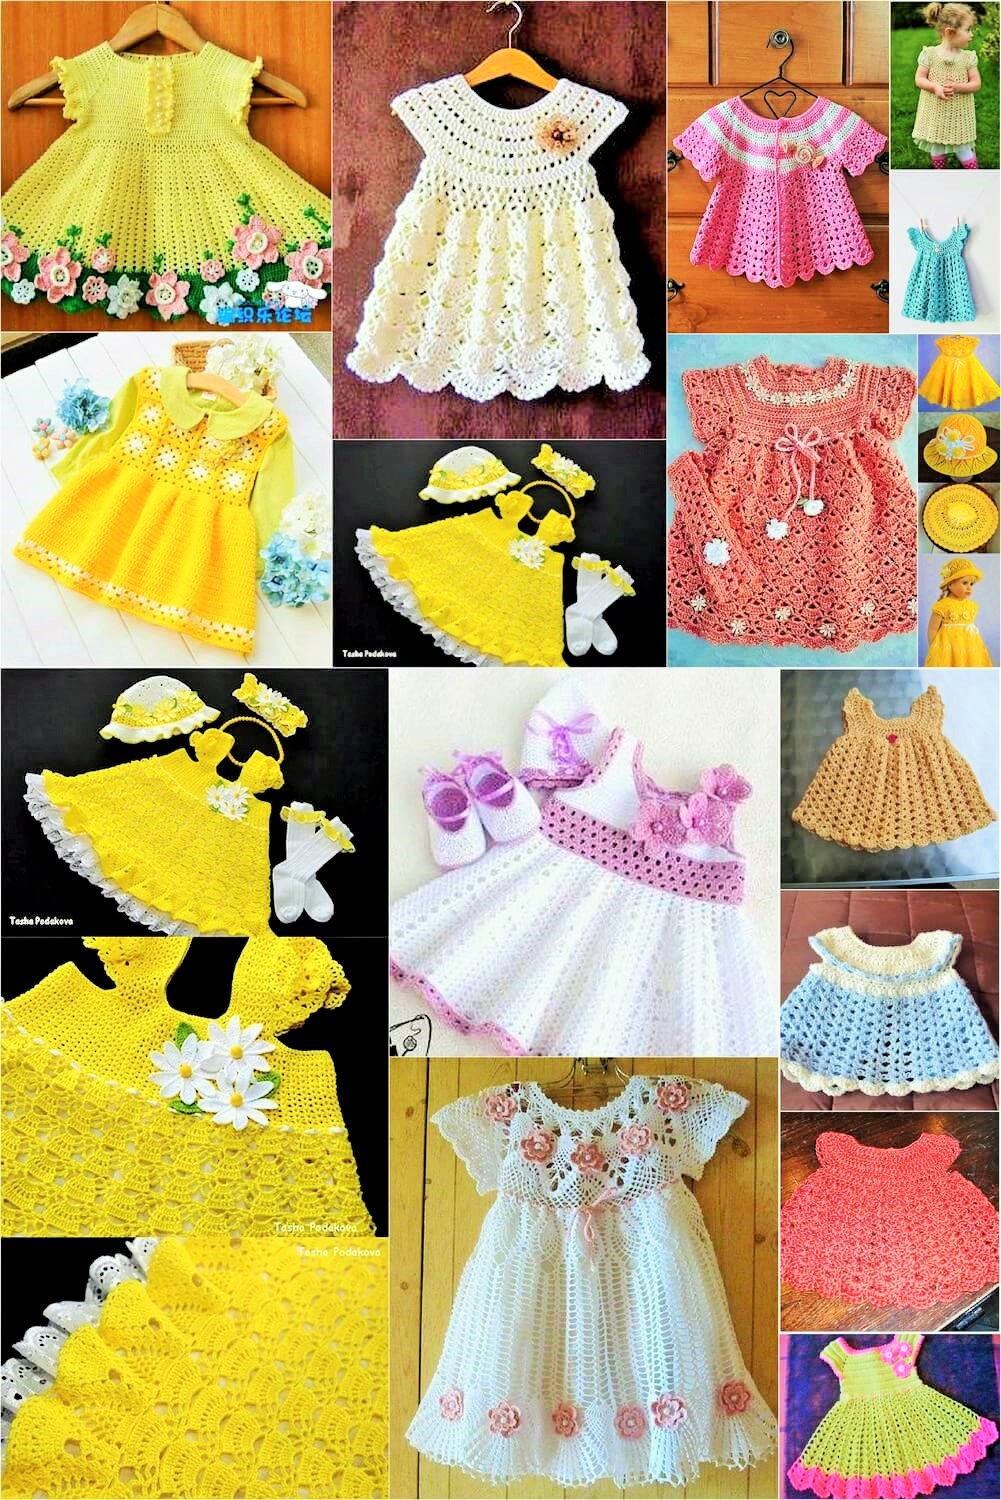 Baby-dress-children-crochet-ideas (2)